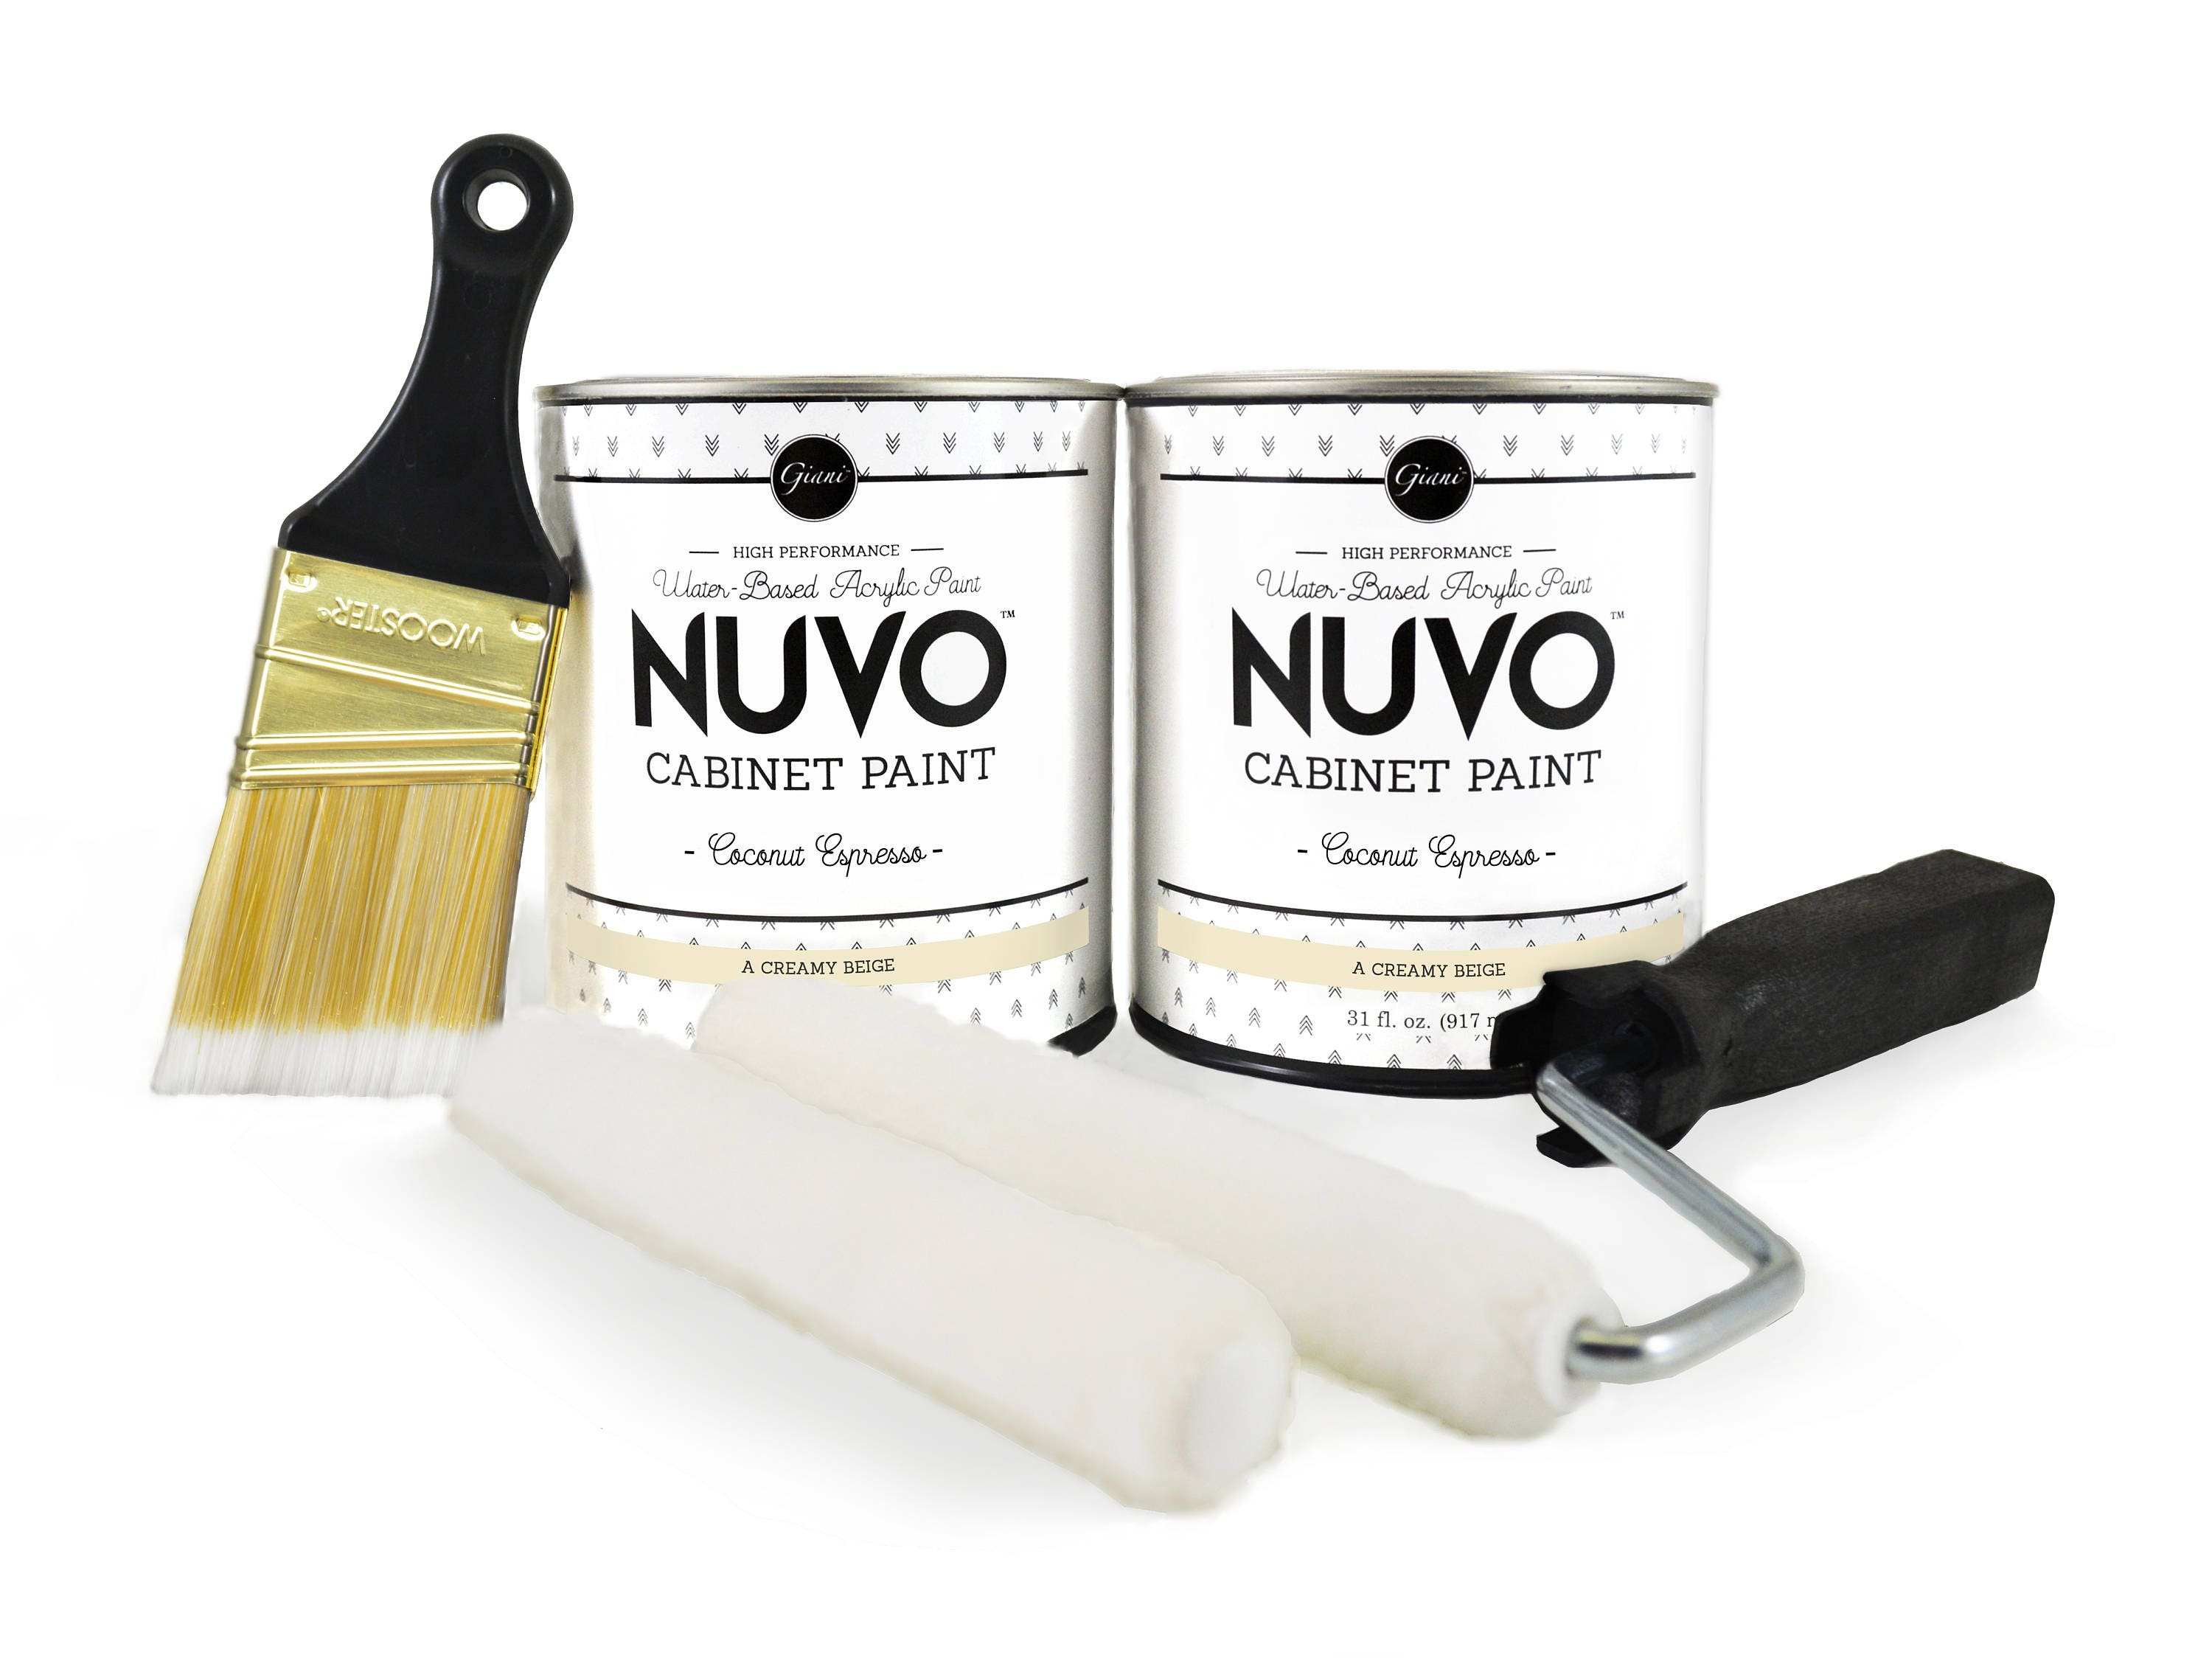 Nuvo Coconut Espresso Cabinet Paint Kit From Gianiinc On